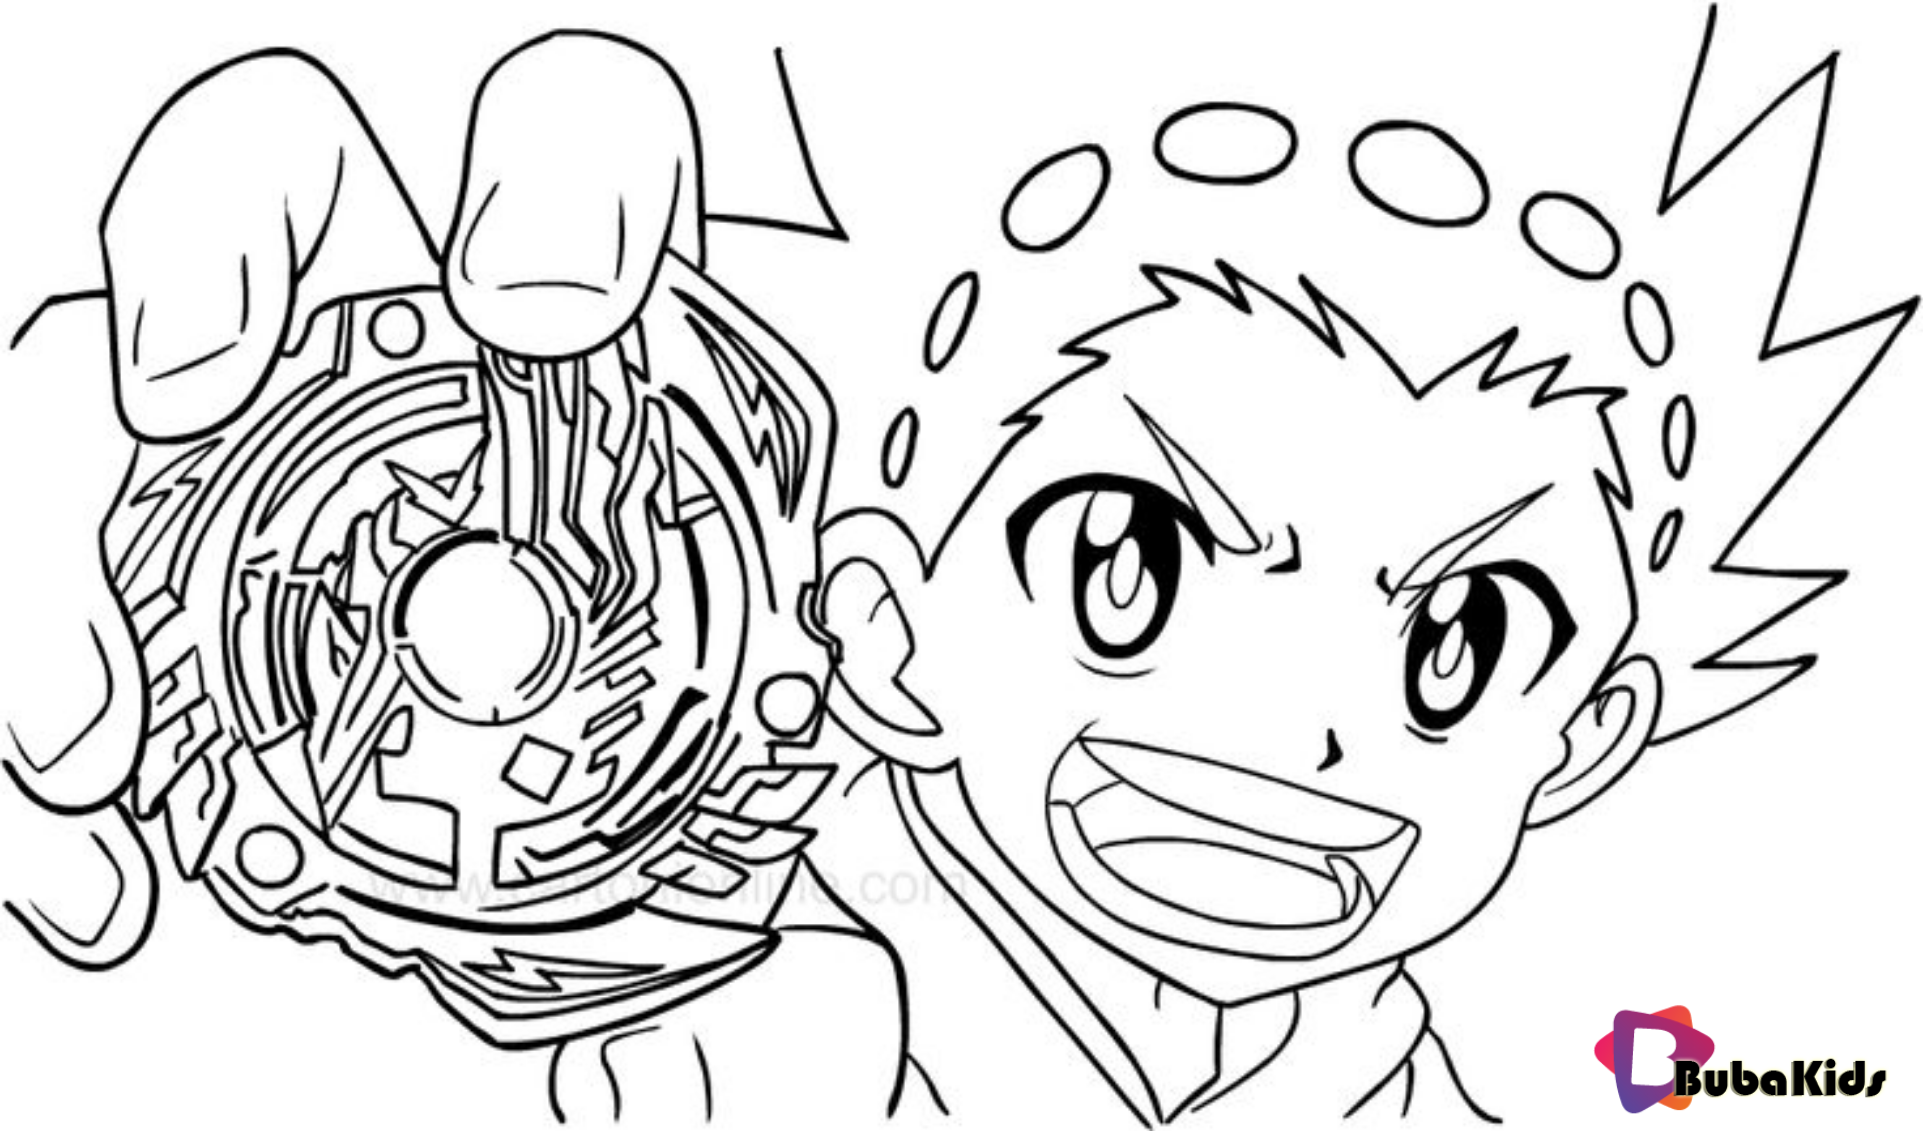 beyblade burst coloring pages xcalius drago beyblade coloring pages for kids printable free burst xcalius coloring beyblade pages